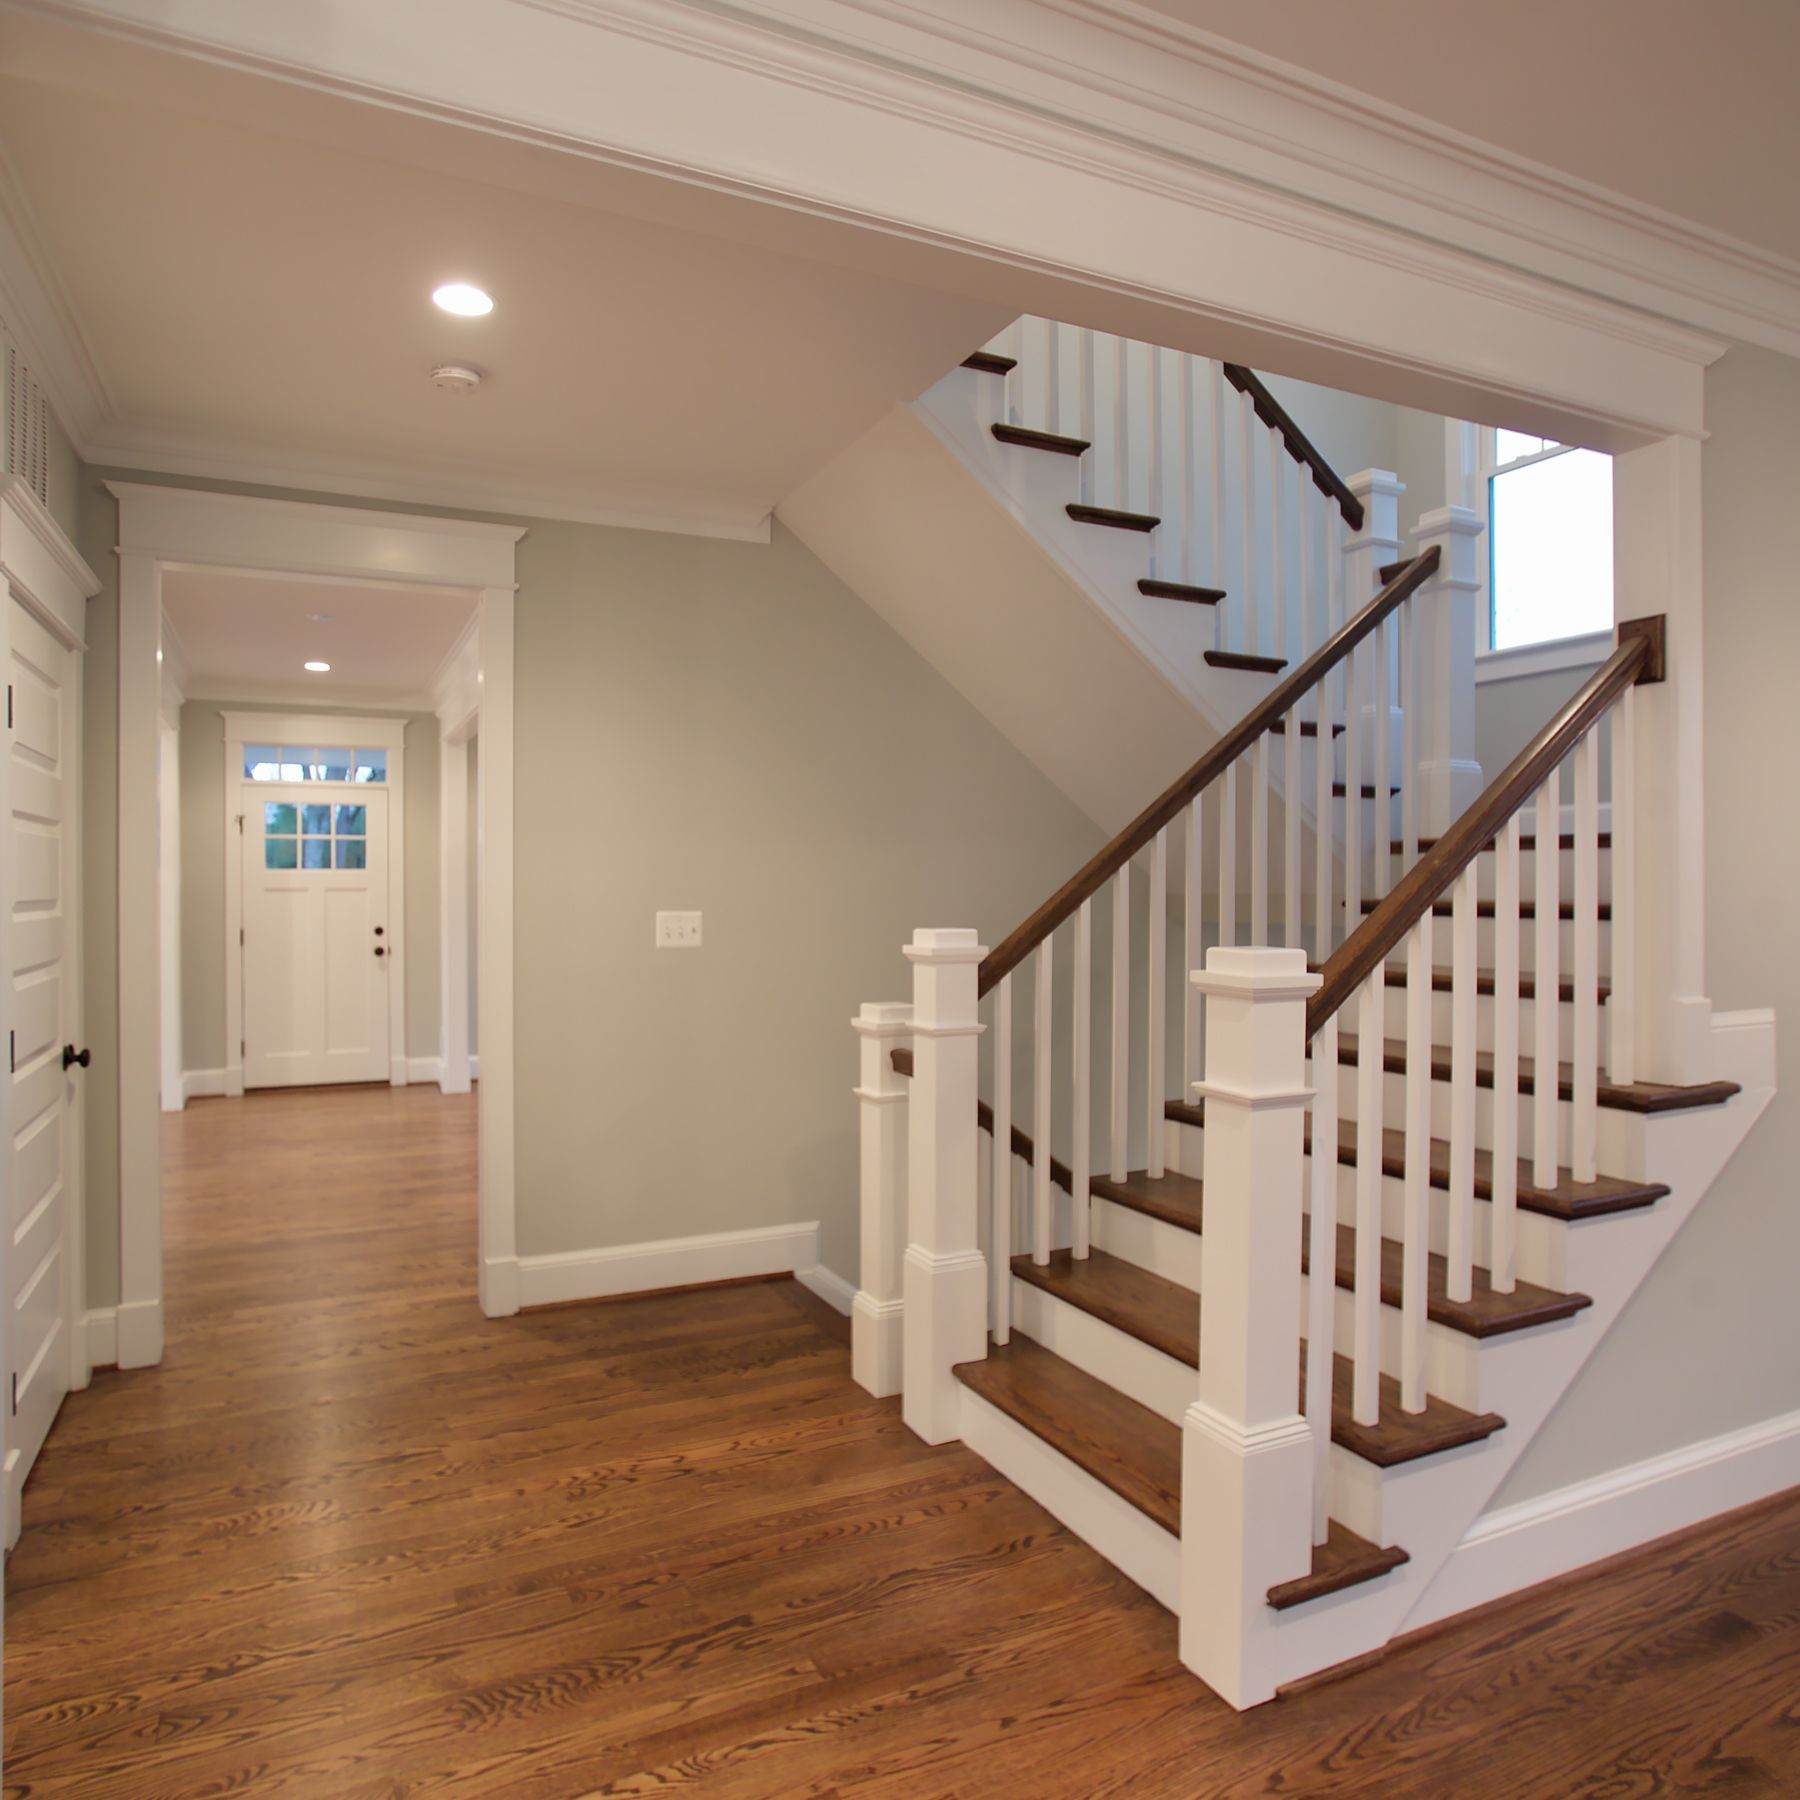 The Beautiful U Shaped Stair Has Hardwood Treads And Handrails With Painted  White Risers,